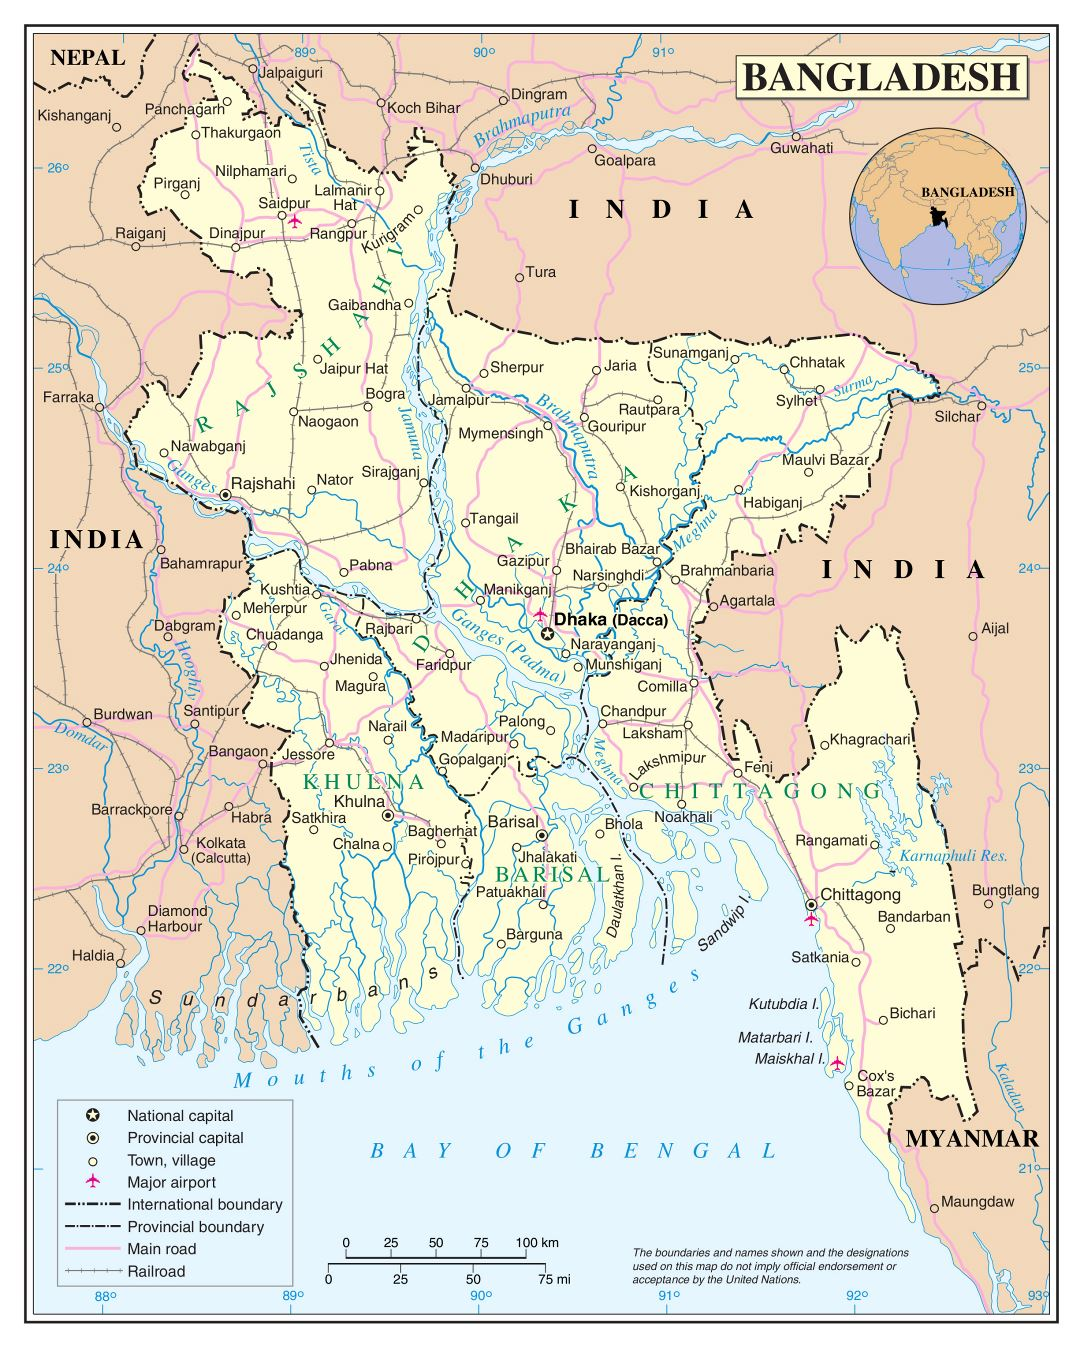 Large detailed political and administrative map of Bangladesh with roads, railroads, cities and airports